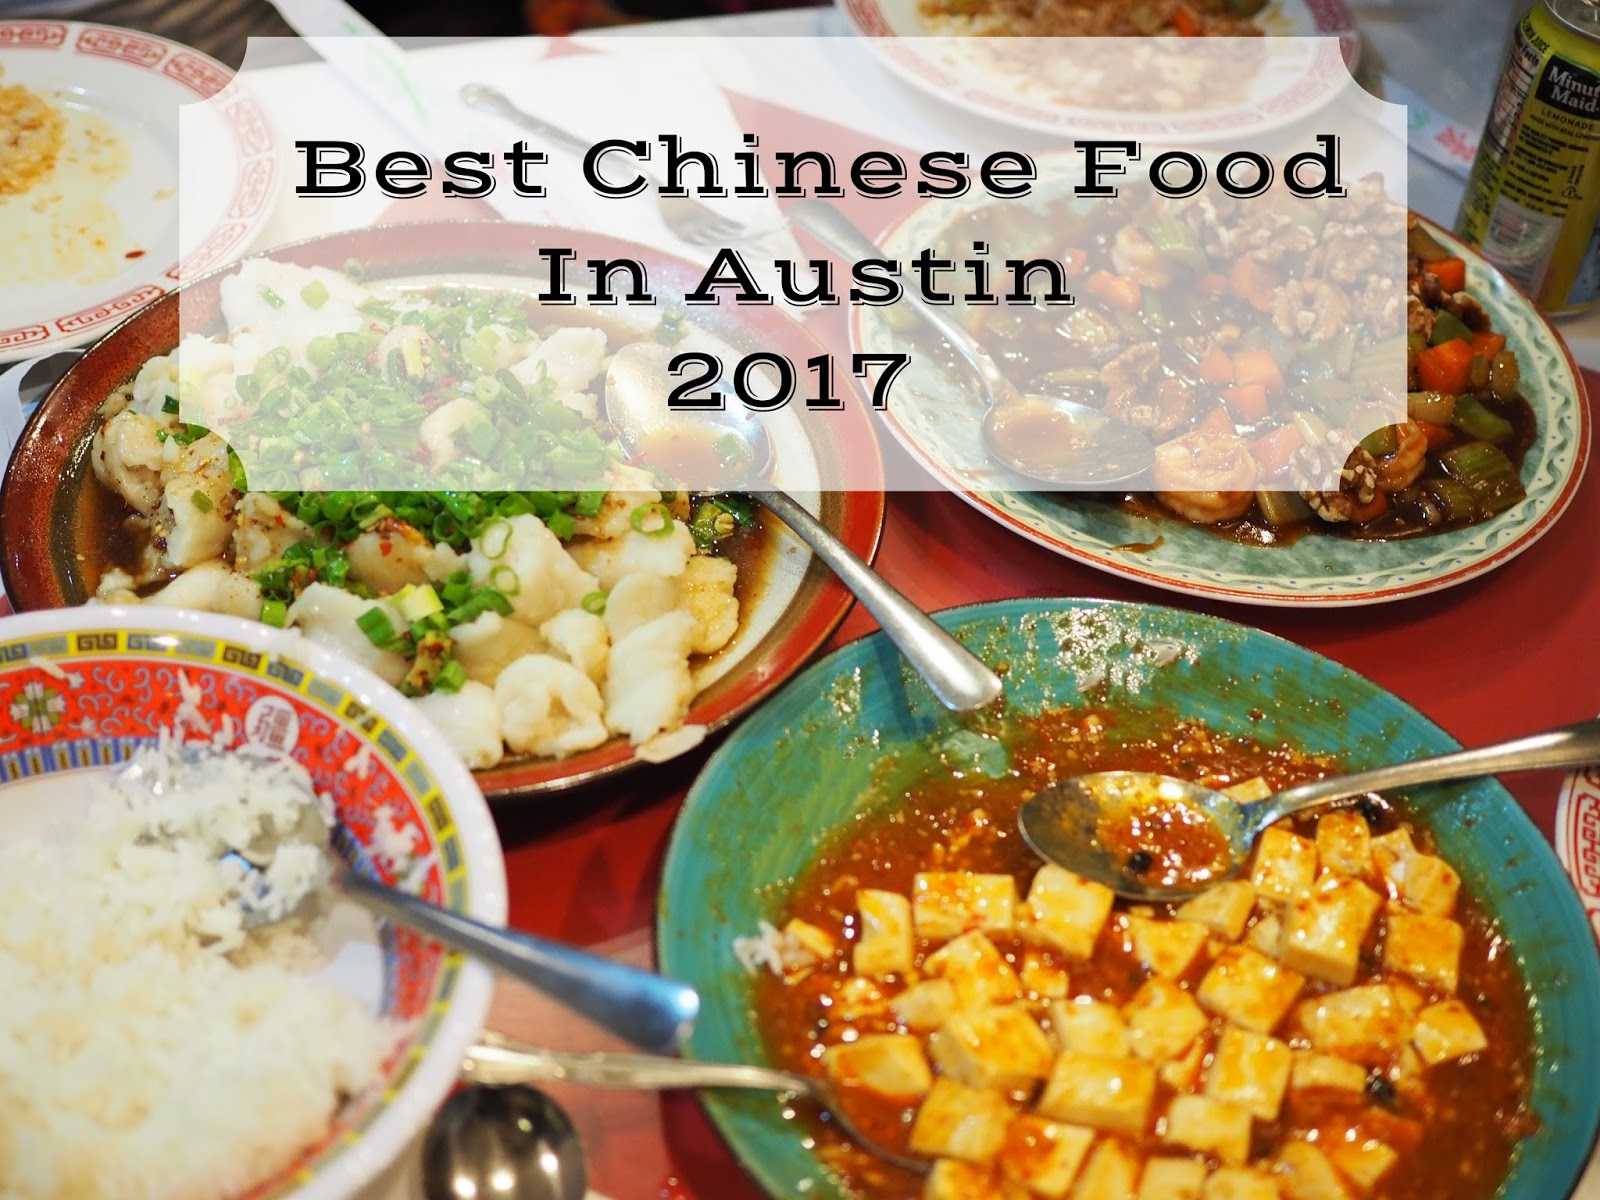 Foodie is the new forty best chinese food in austin 2017 edition once again for 2017 ive updated my guide to the best chinese food in austin for the austin food blogger alliance city guide forumfinder Images